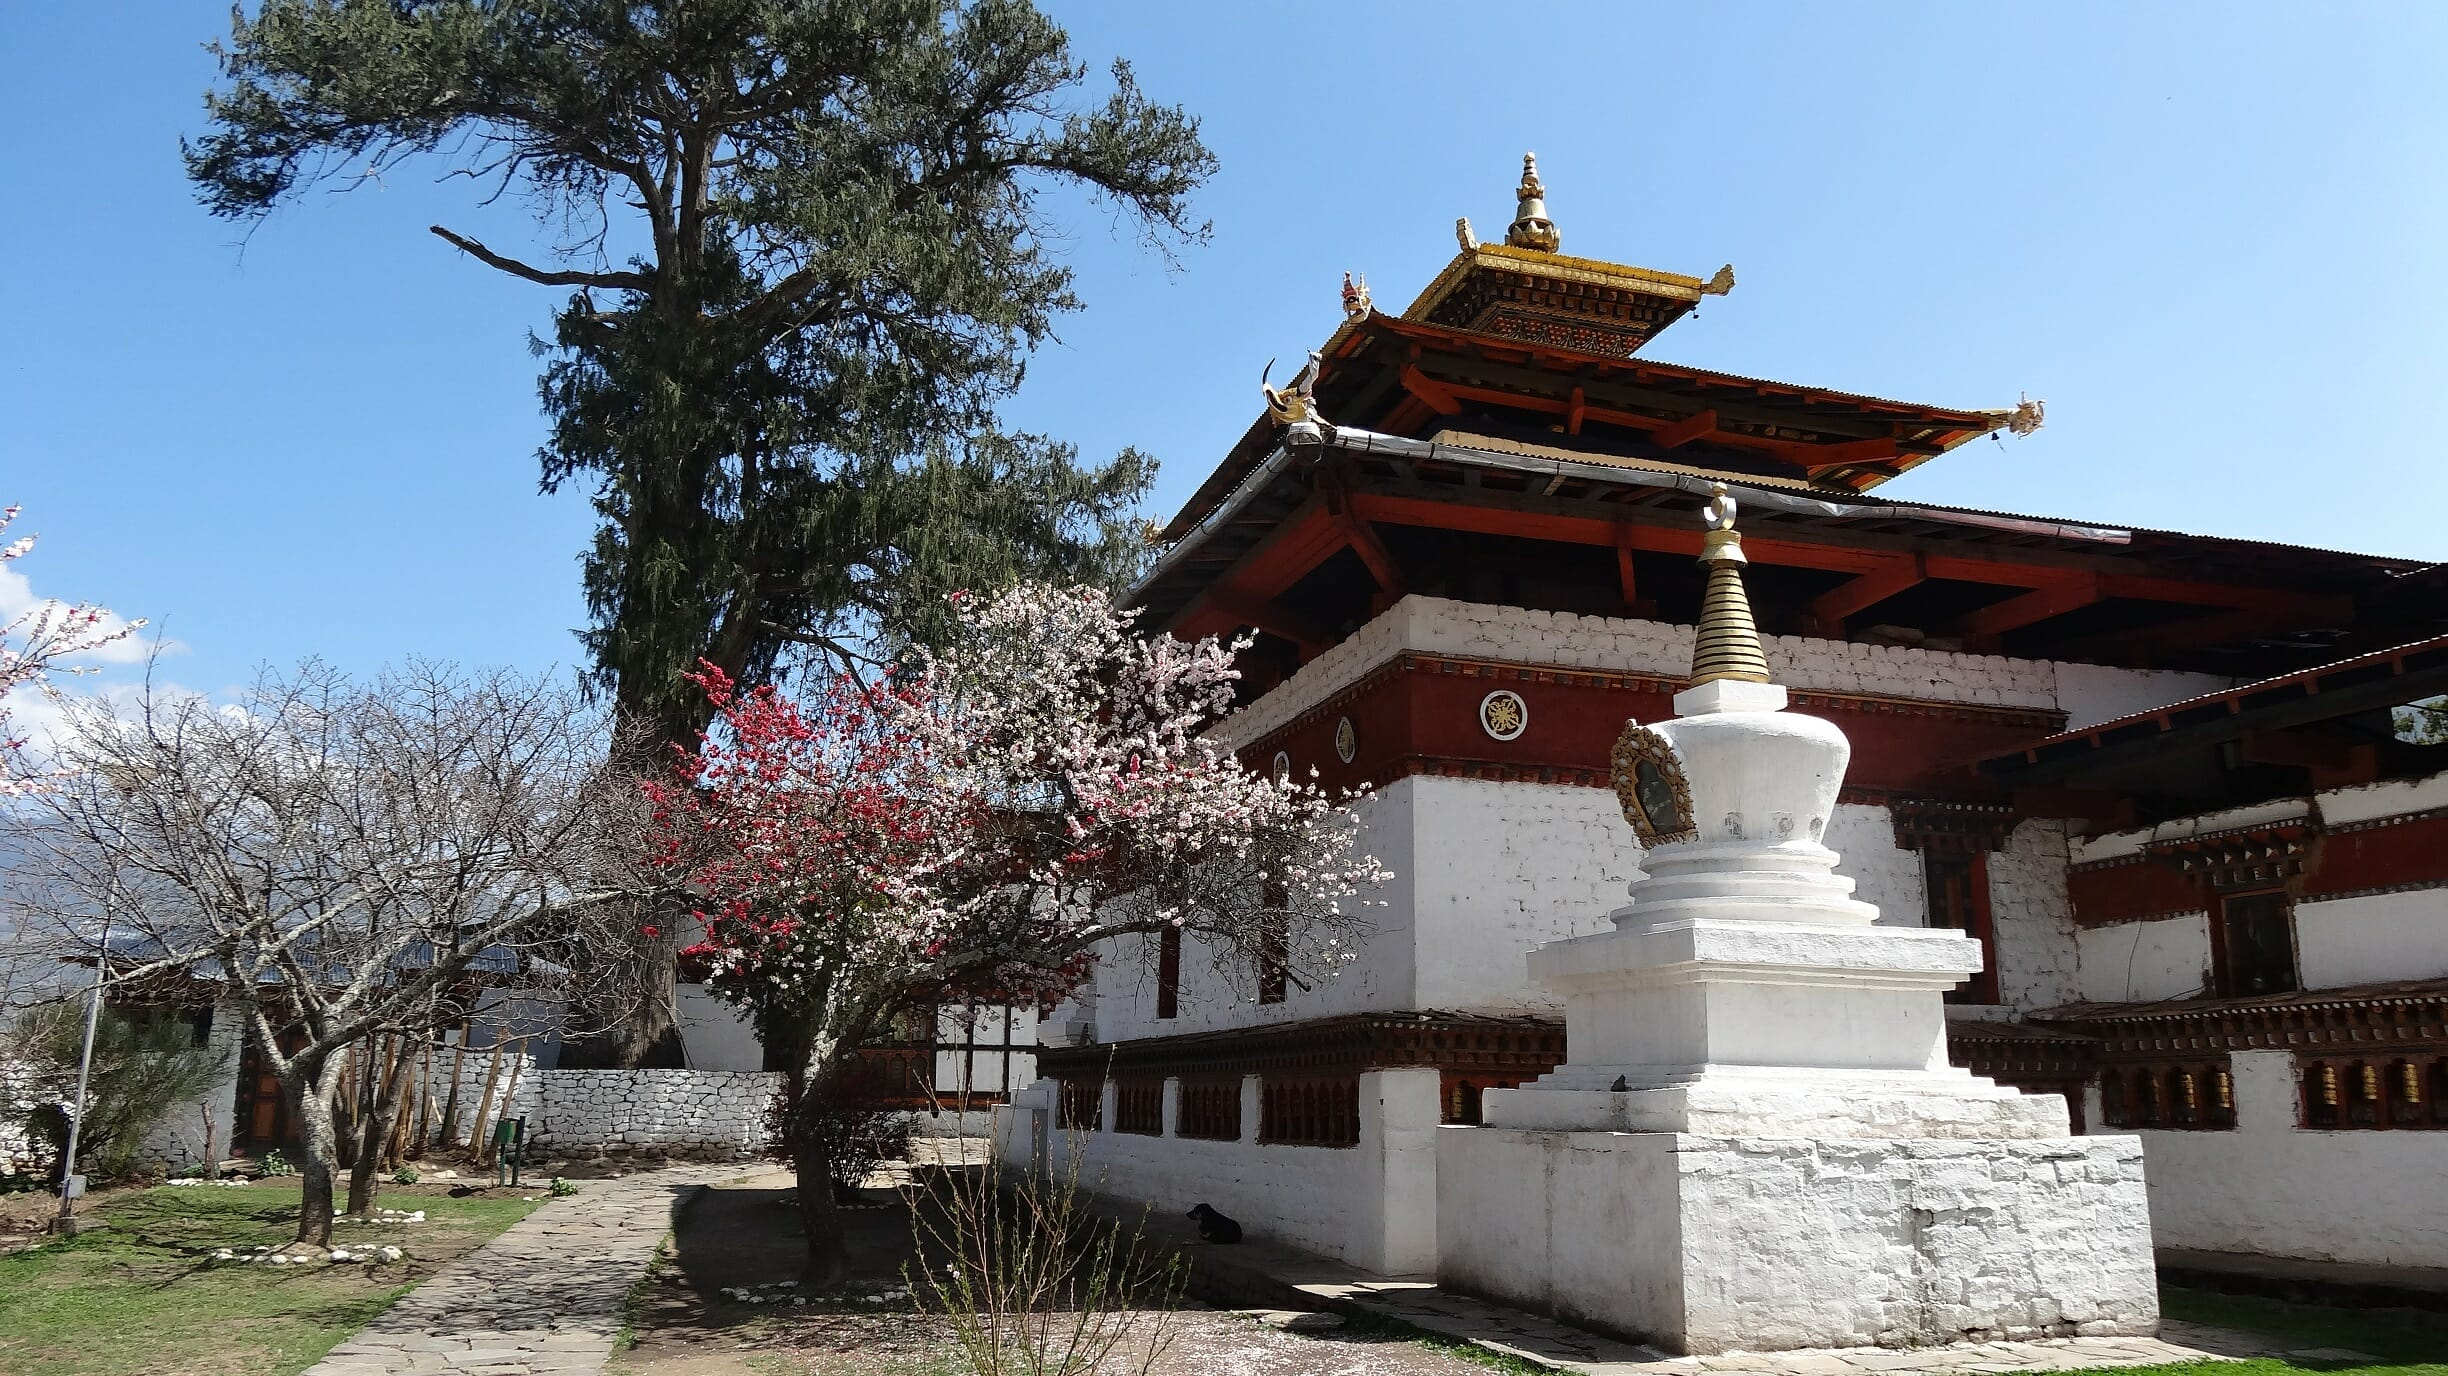 Kitchu Lhakhang in Paro